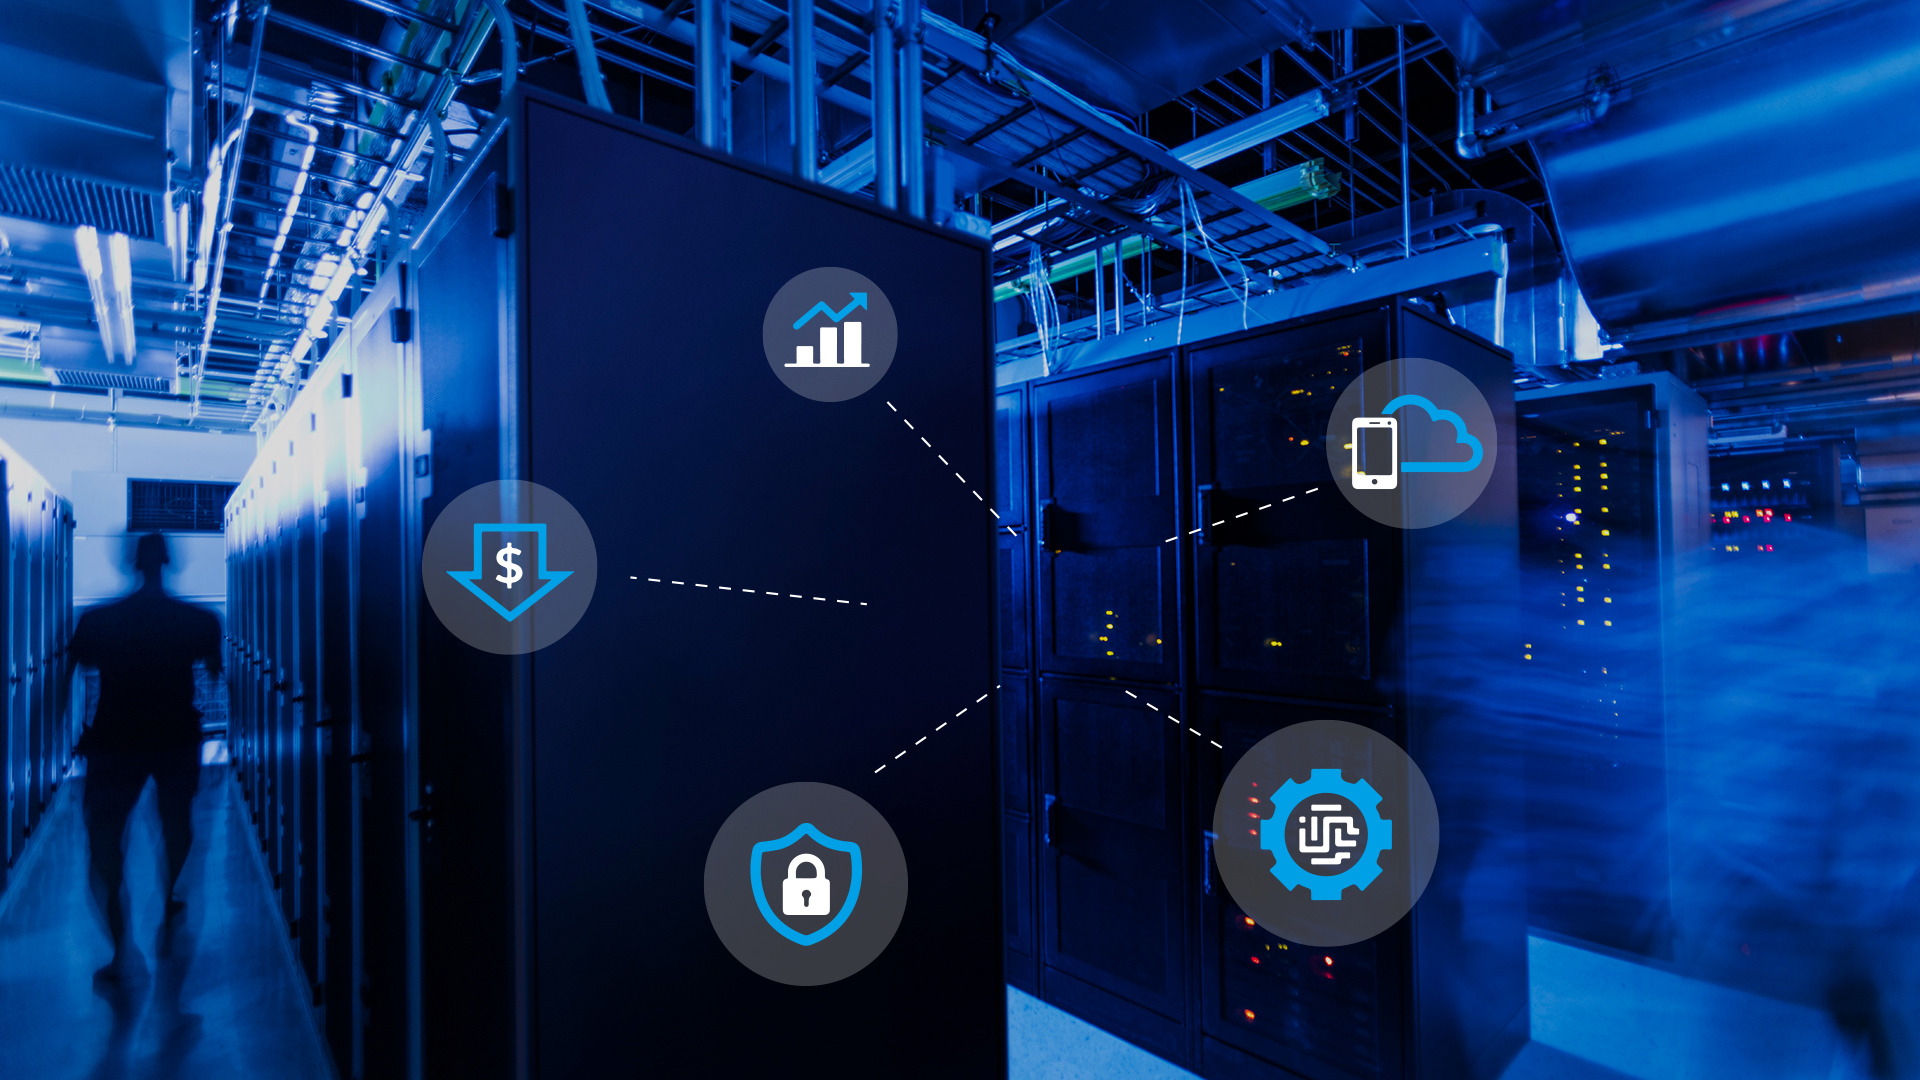 Photo of inside a data center with icon overlaid to represent Azure Stack HCI